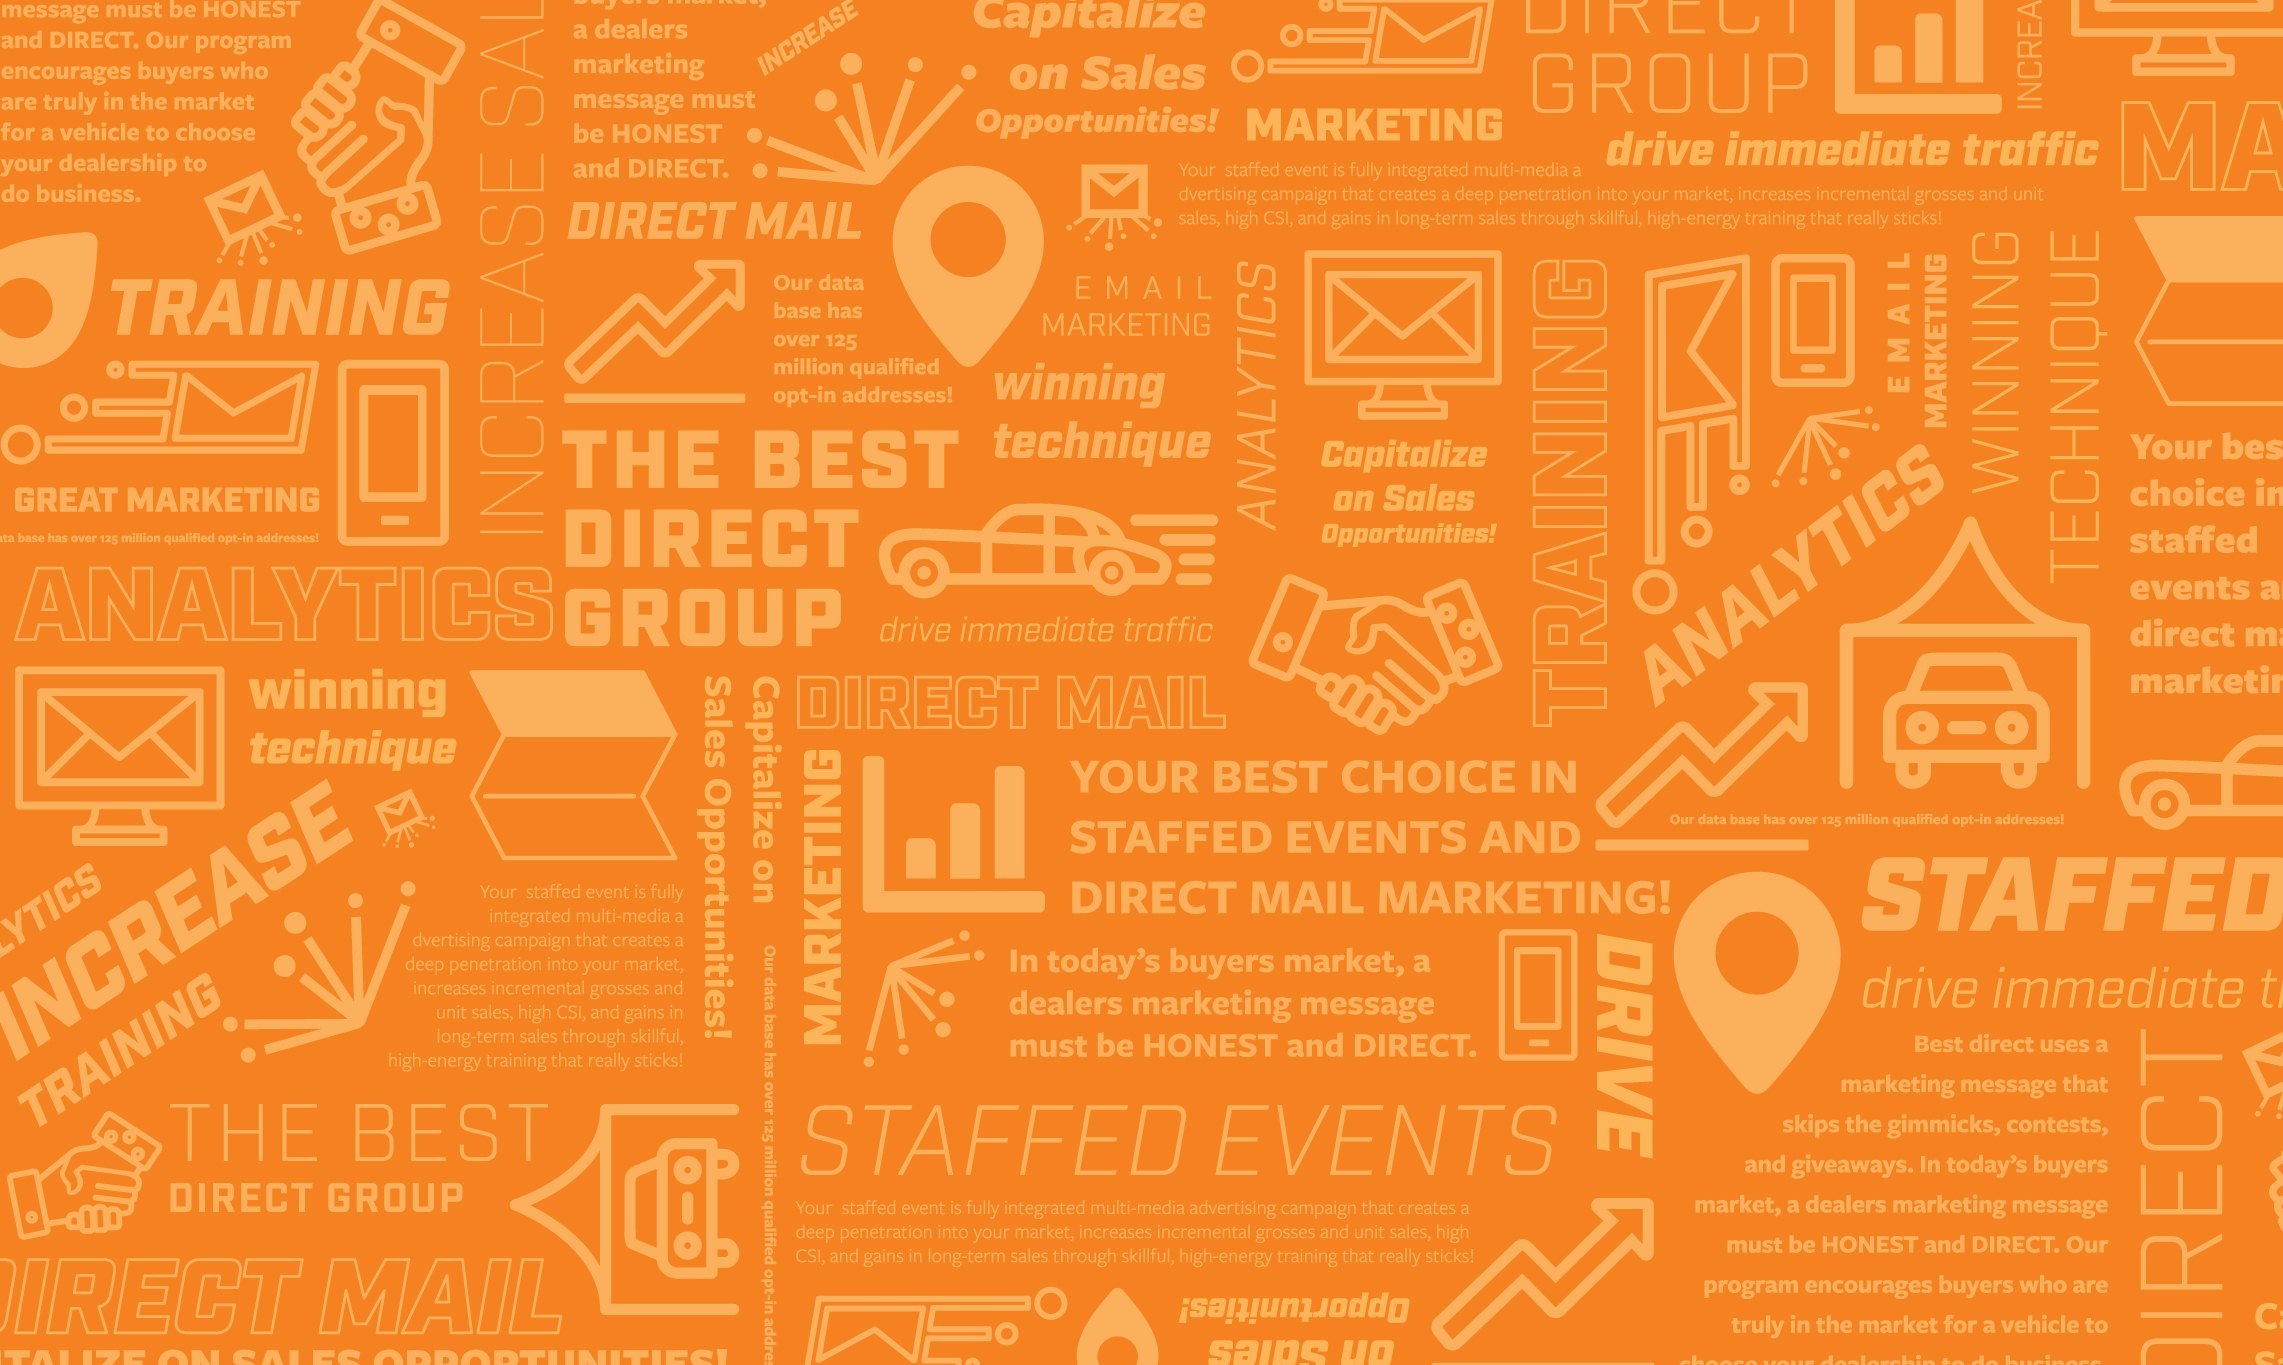 Data power success at The Best Direct Group.    With access to over 5 billion consumer, automotive, and online records, The Best Direct Group provides knowledge and insight and marketing to hundreds of dealerships enabling them to achieve success through the use of high-quality data driven marketing campaigns. The Best Direct Group's data warehouse is one of the largest and most respected in the industry. It is constructed of hundreds of compiled and proprietary data sources, utilizes a triple verification process, and is built from the individual level up to the household.